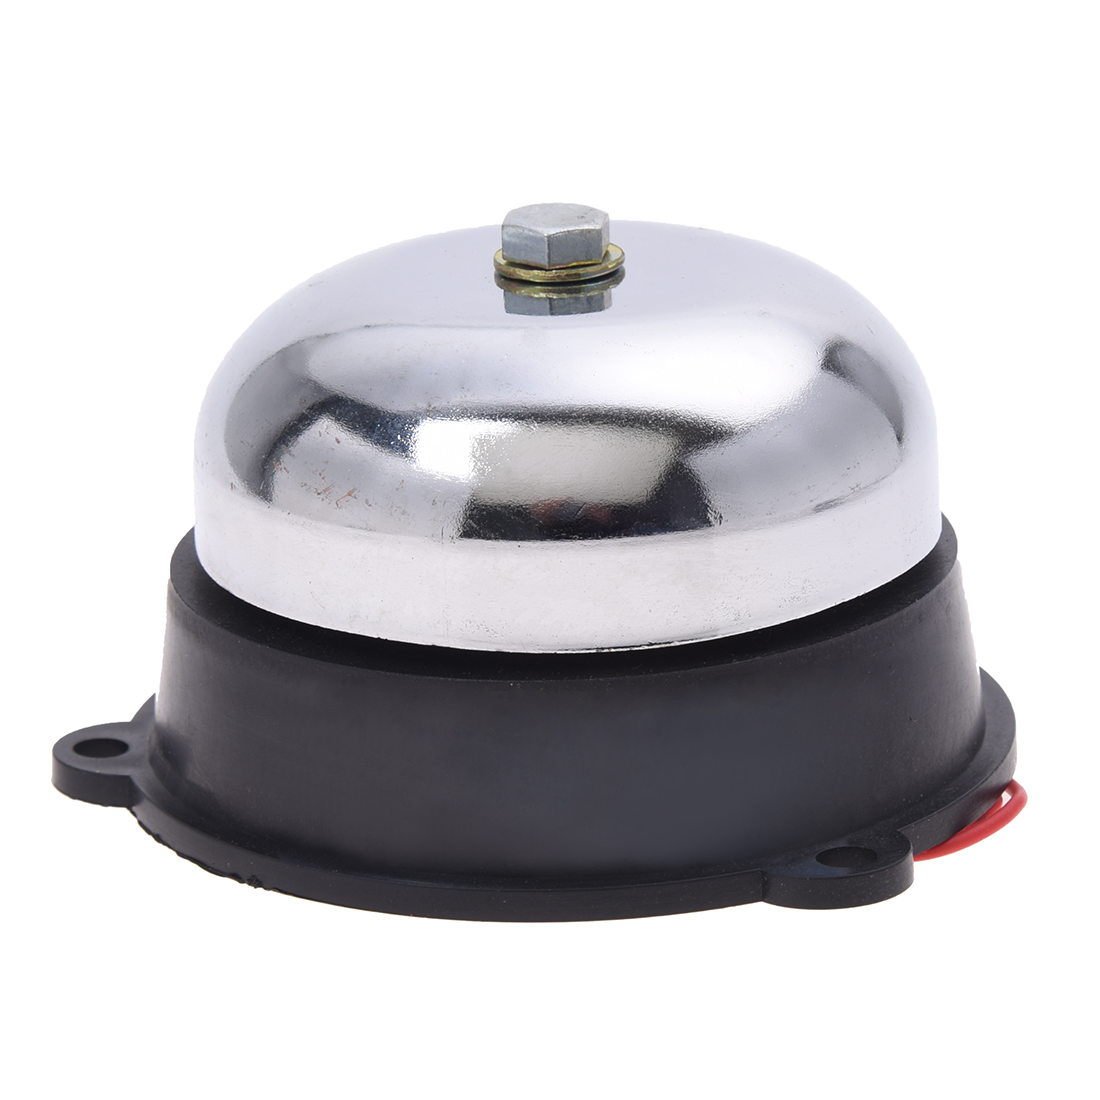 MOOL School Factory Fire Alarm Safety Electric Bell 75mm AC 110V UC4-75 engineering hotel fire alarm police bell fire fire bell 220v 4 inch suit